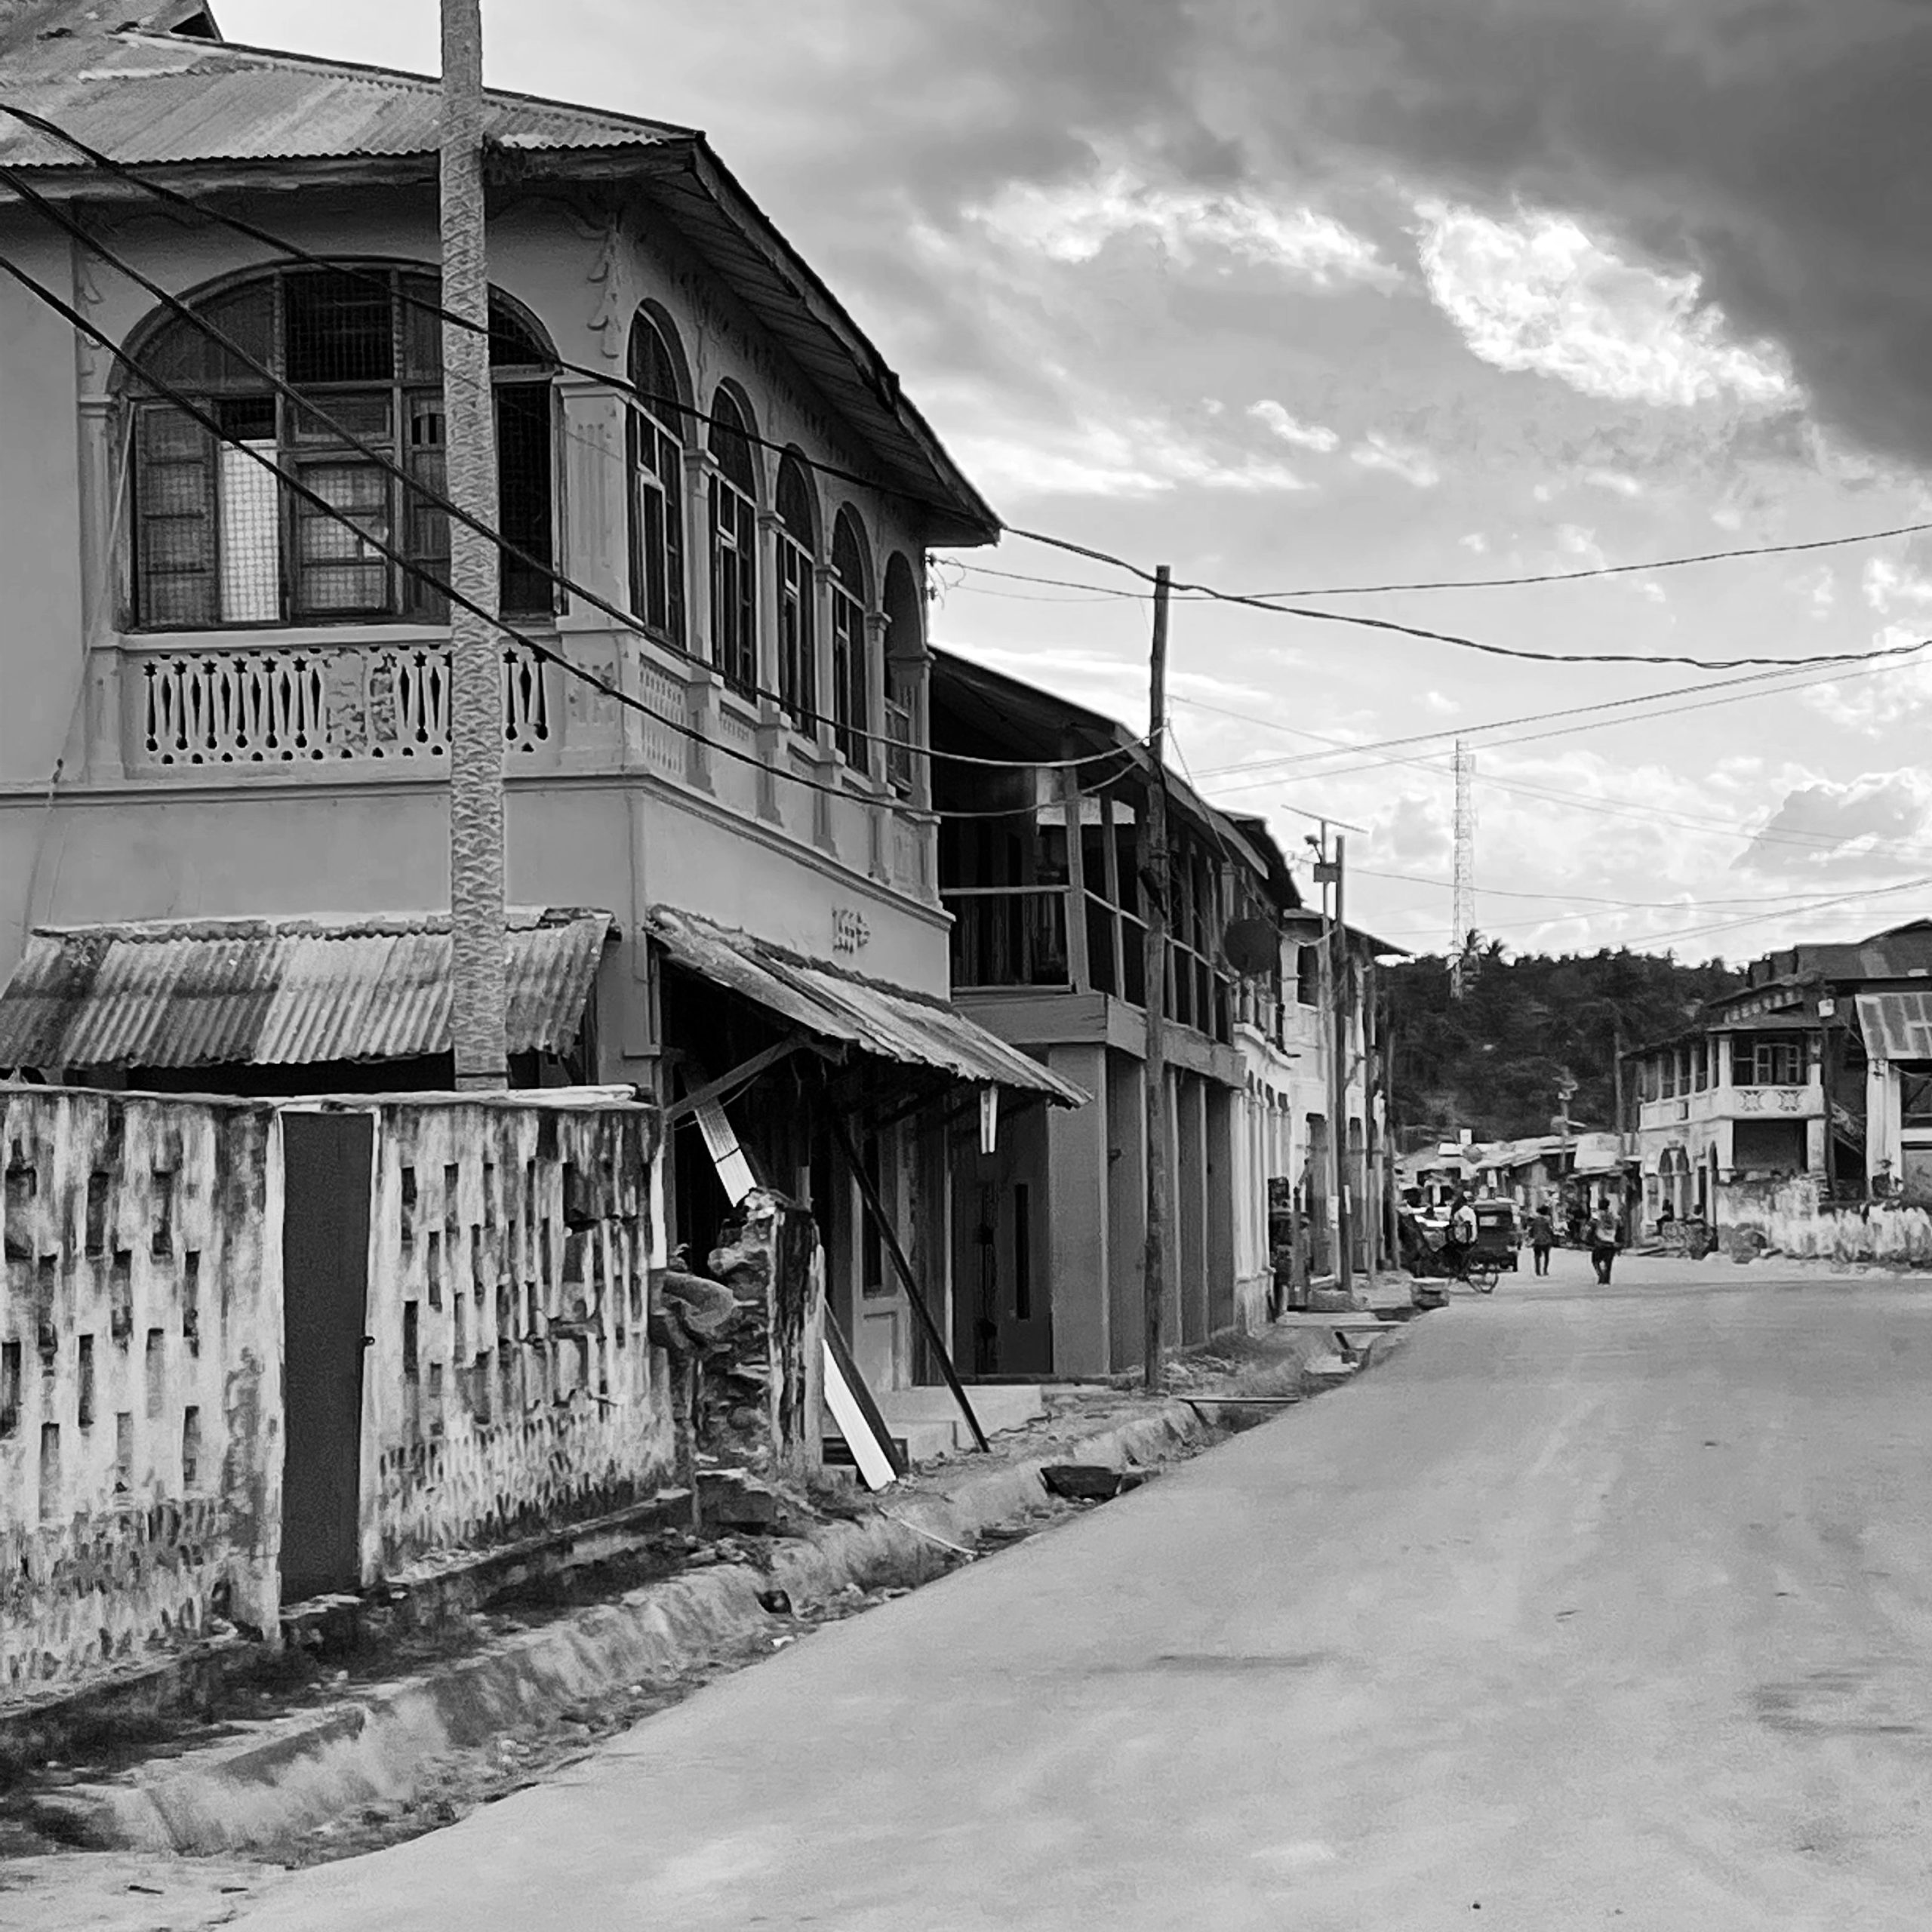 View of one of the streets in Lindi town